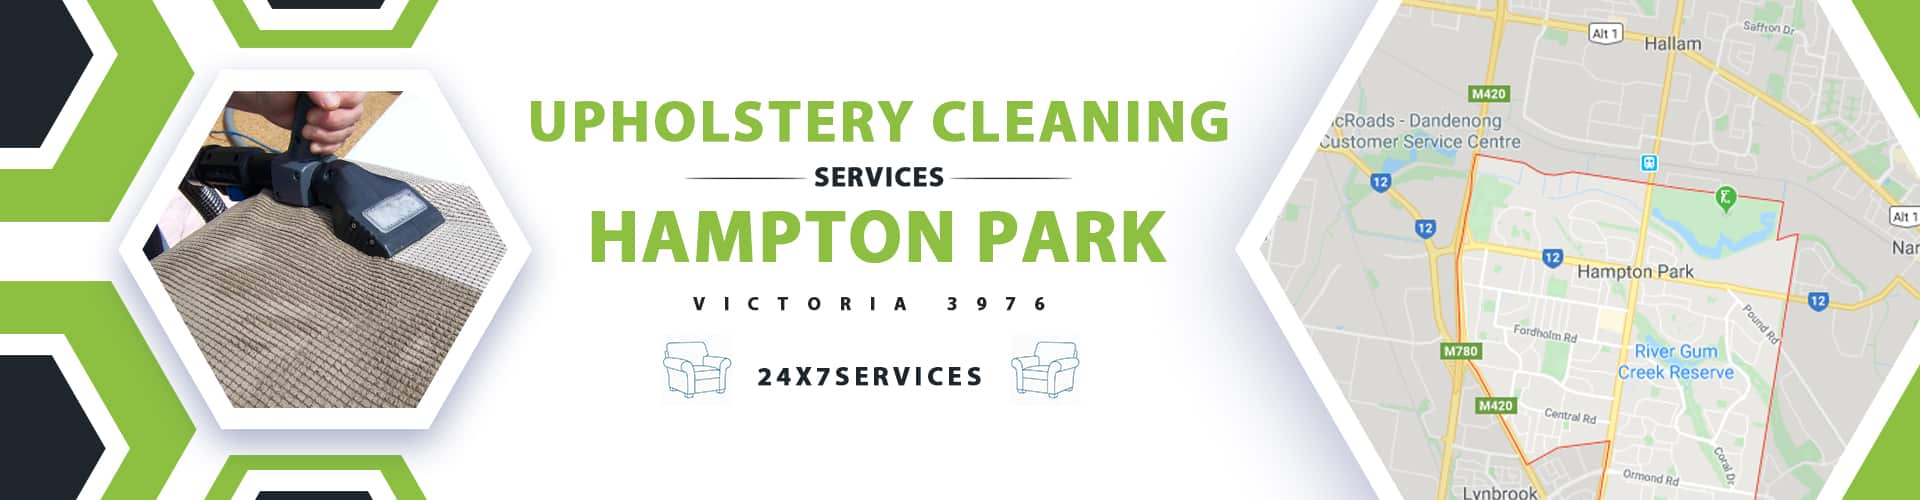 Upholstery Cleaning Hampton Park